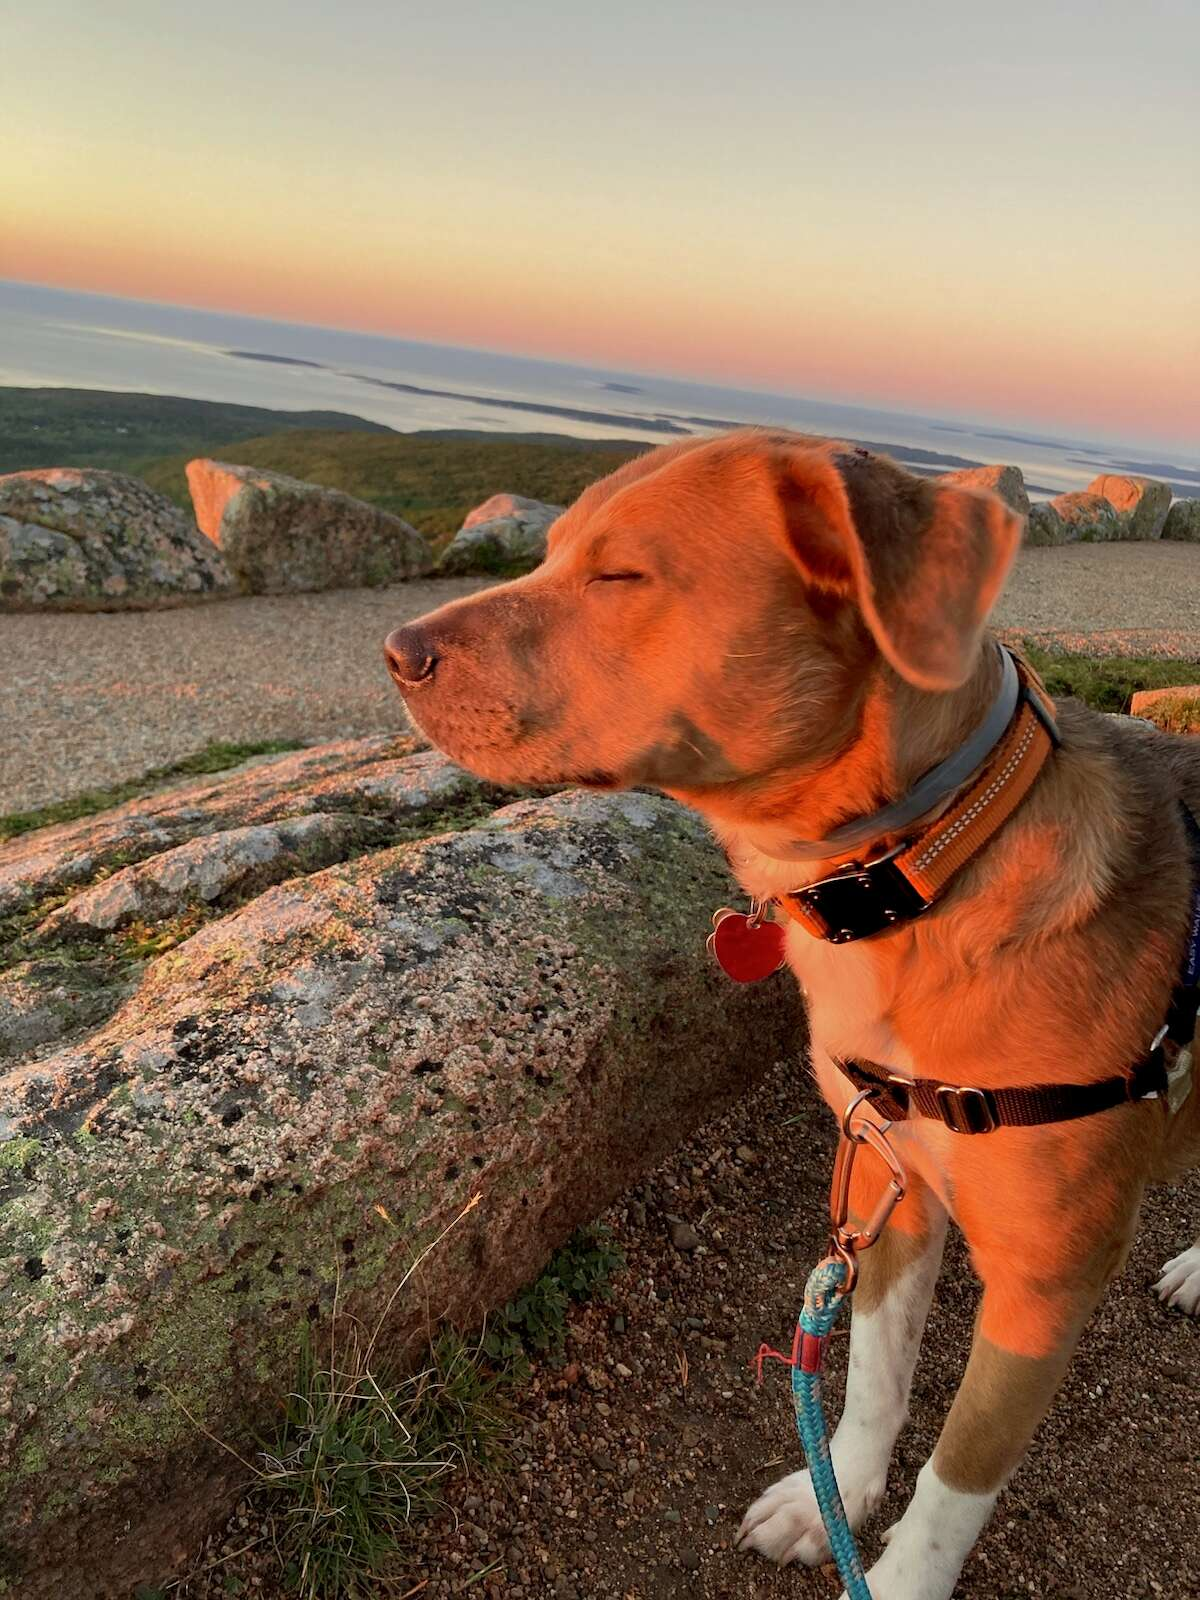 Rick Eckhardt's daughter Janet took this photo of Athena soaking up the sunrise on Cadillac Mountain in Acadia National Park in early September.